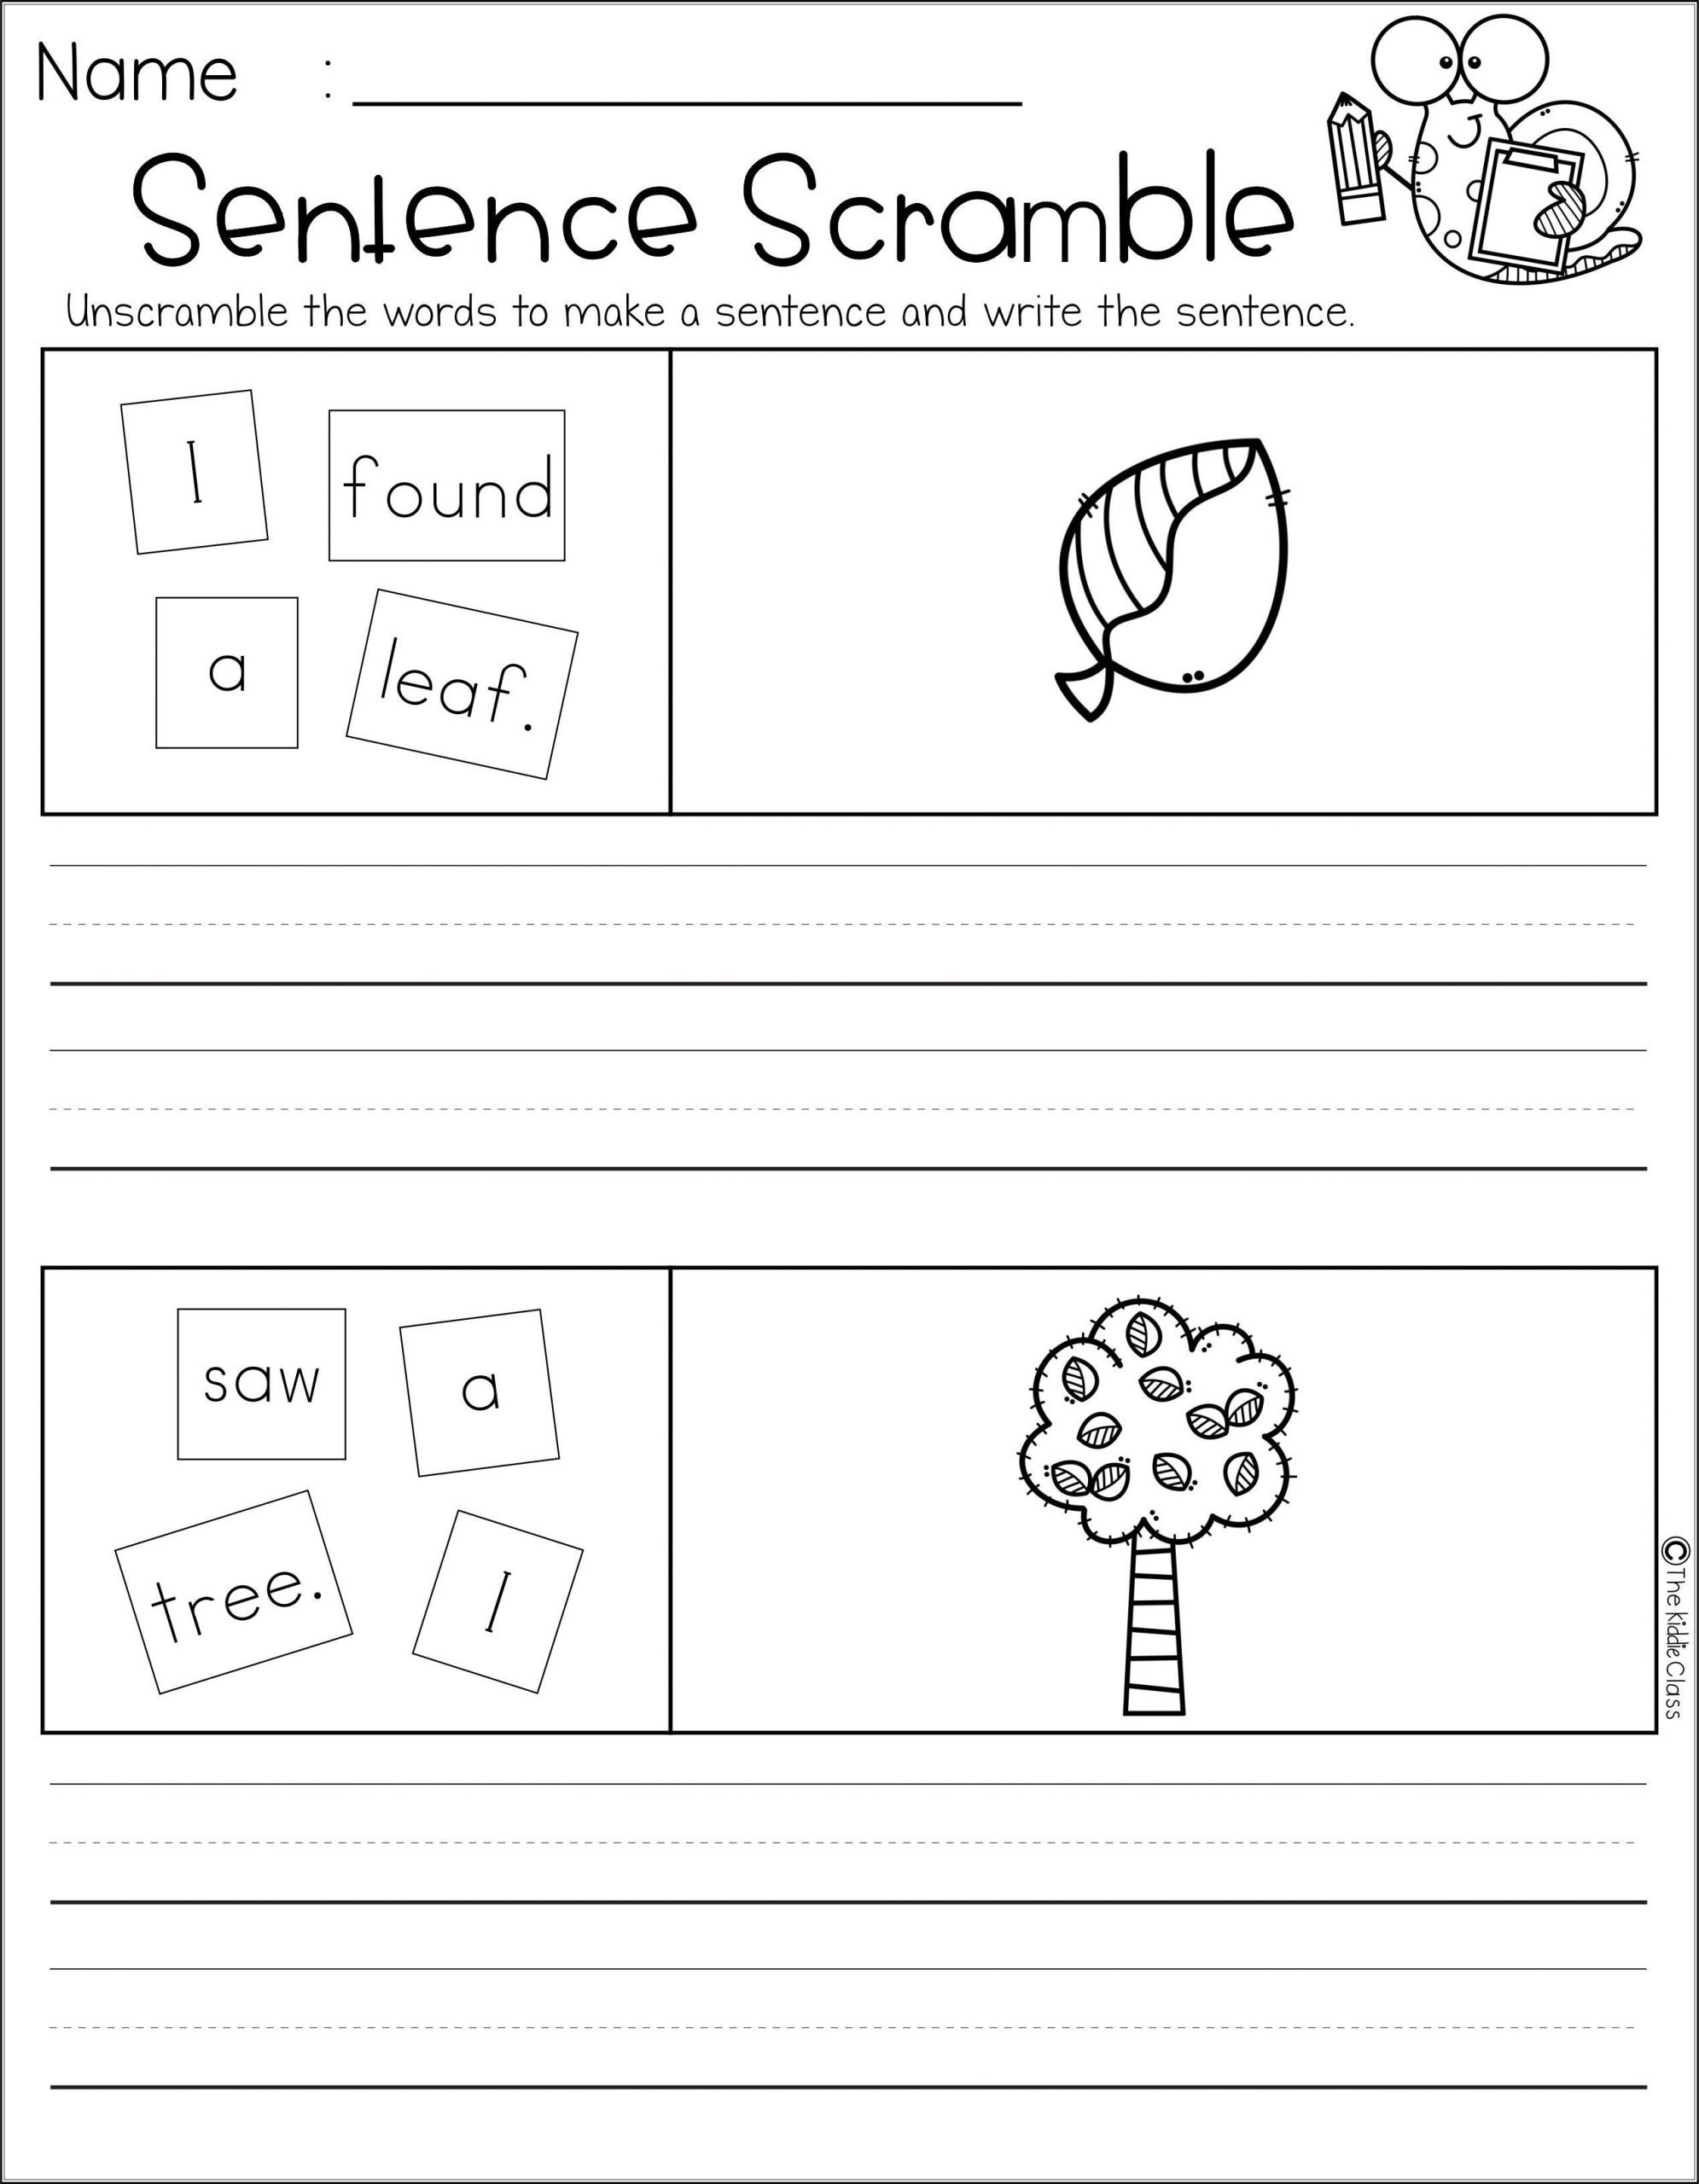 Scrambled Sentences Worksheets 2nd Grade Free Sentence Scramble